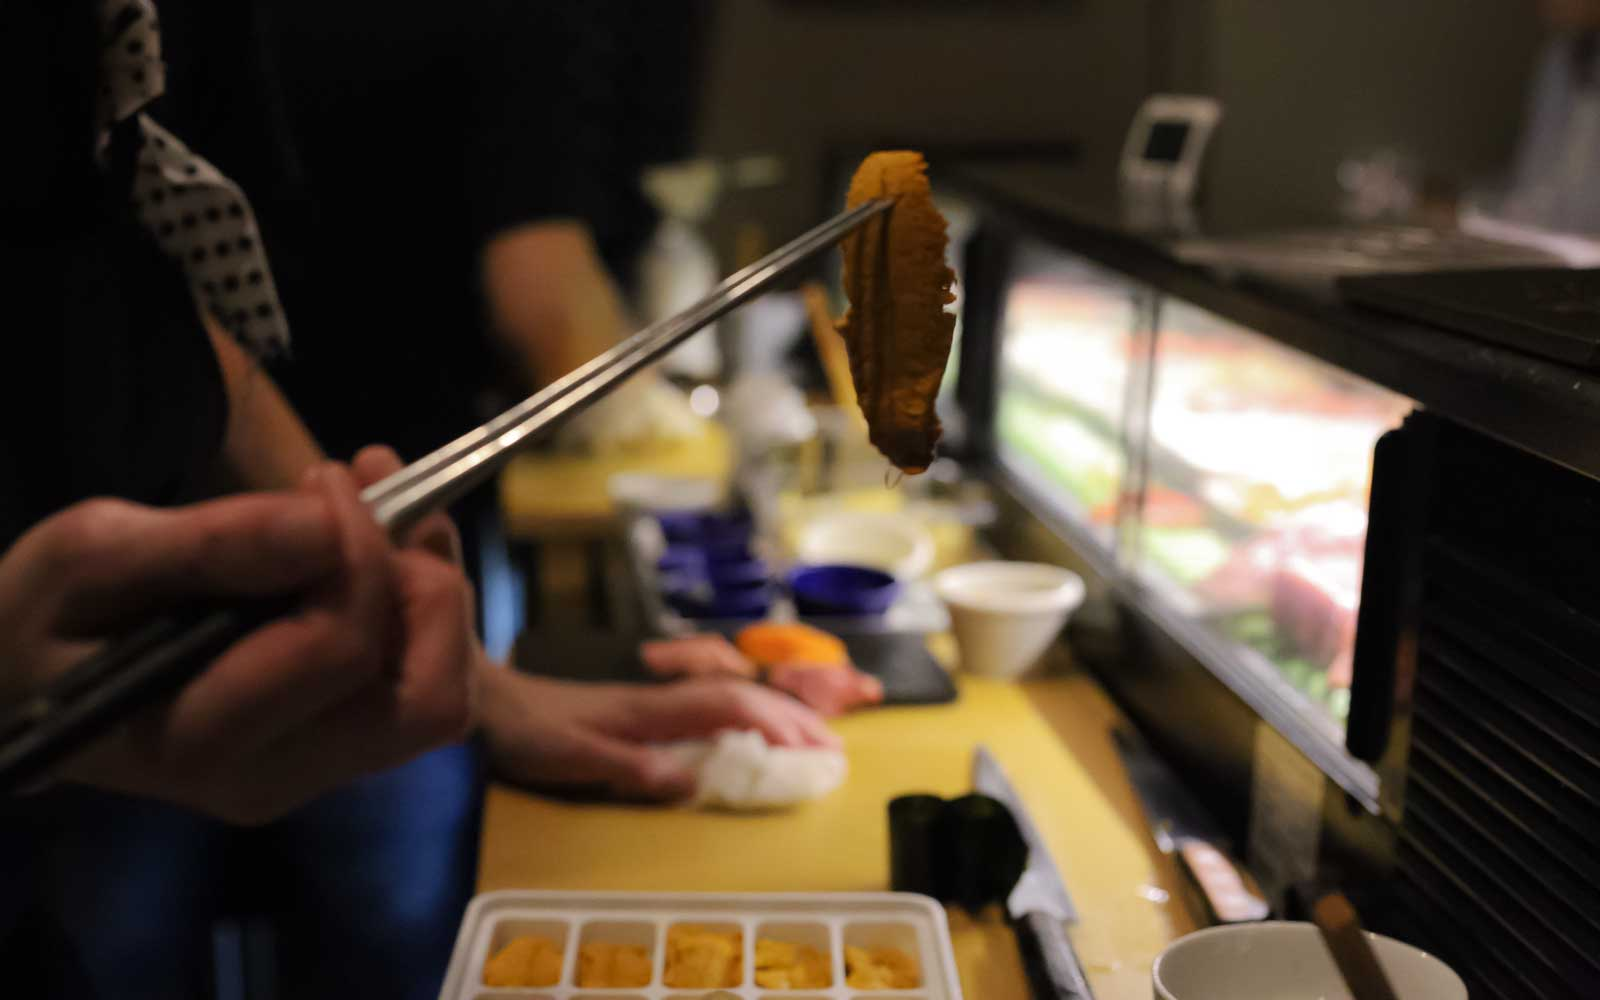 Chef David Bouhadana prepares a dish for the 12-piece omakase at Sushi by Bou at Sanctuary Hotel.